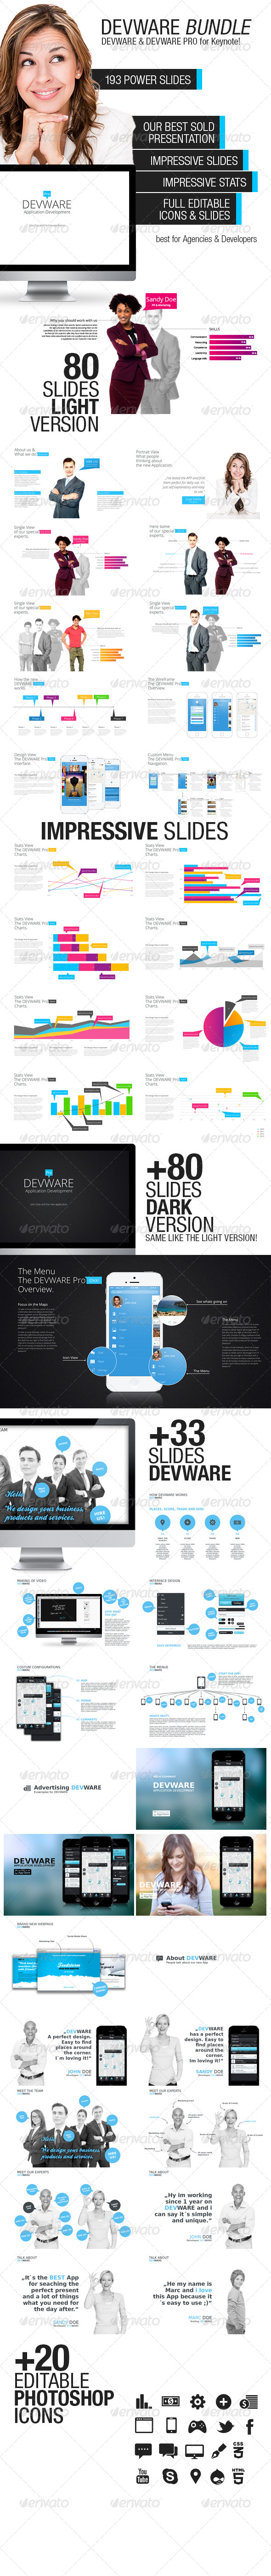 GraphicRiver Devware & Devware PRO Bundle Keynote 7193116